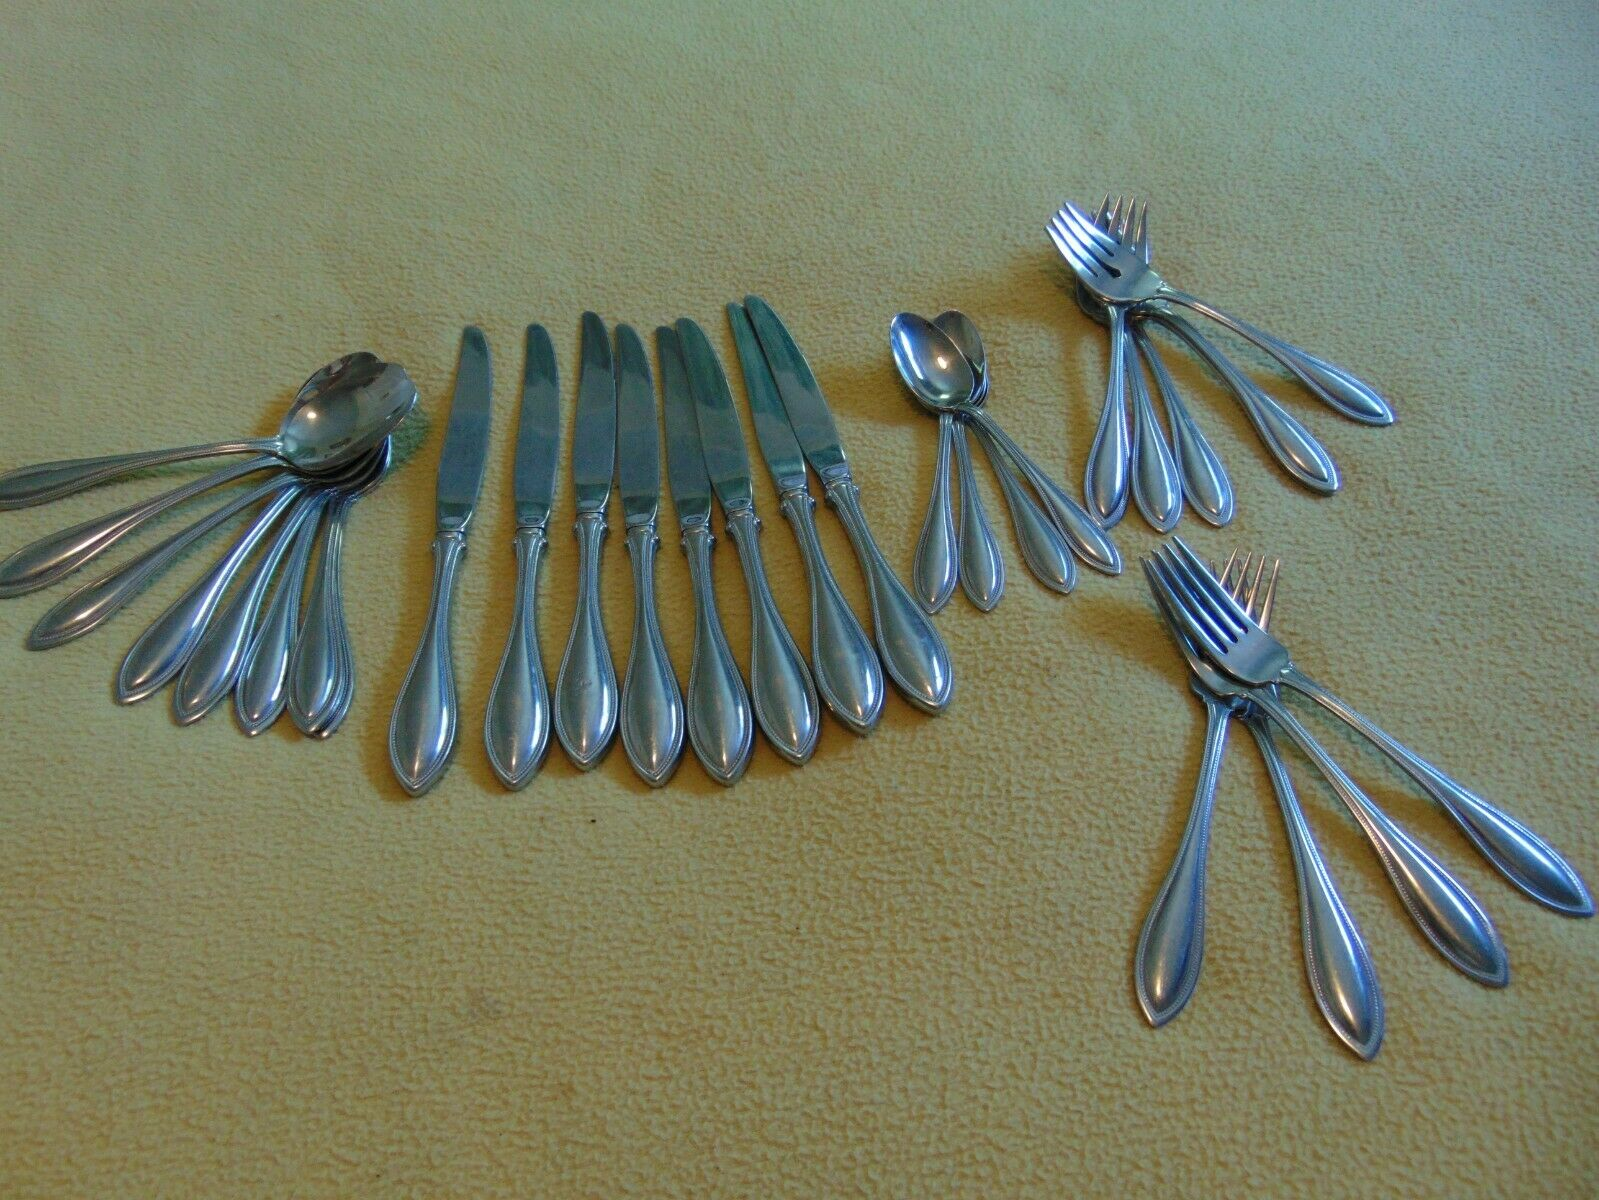 Oneida Arbor American Harmony Stainless Steel Flatware 30 Piece Mixed Lot